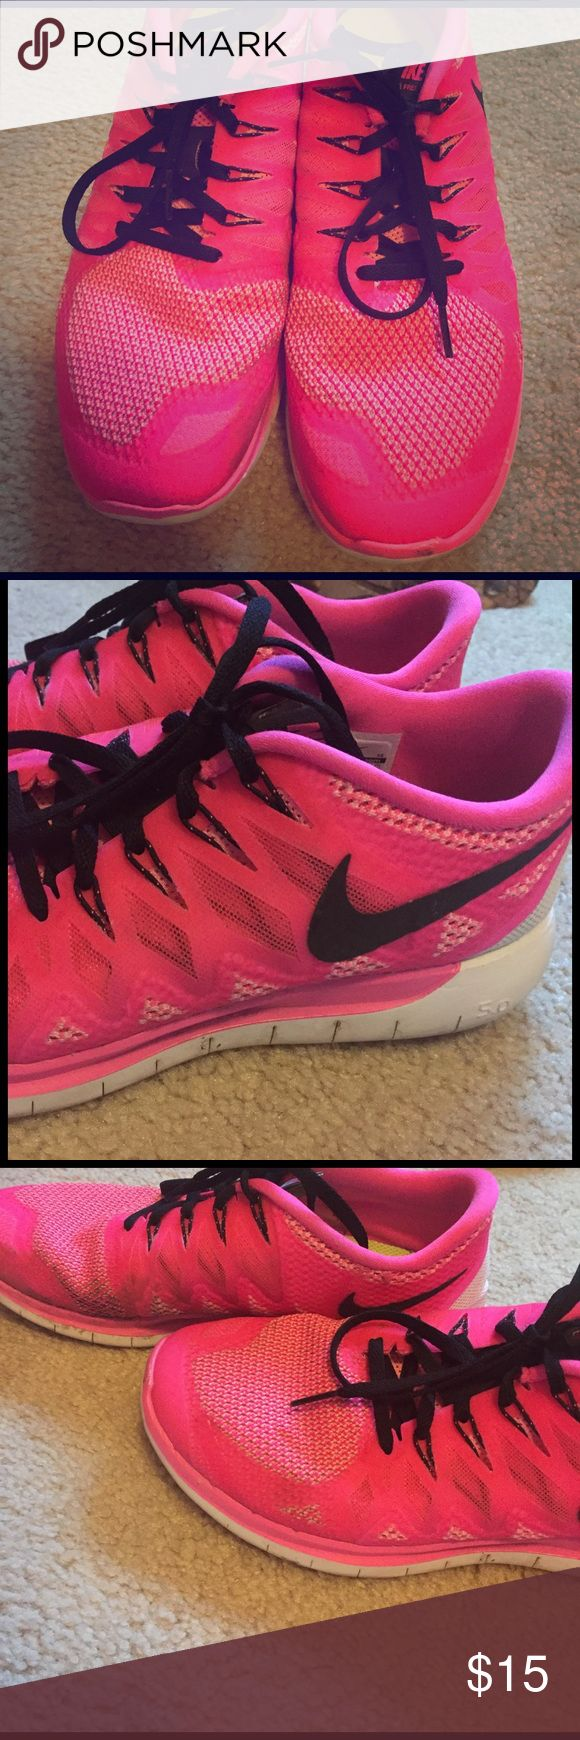 Nike Free running shoes Pink running shoes, very comfy, worn, stain on right shoe but still have a lot of life left in them! Nike Shoes Athletic Shoes